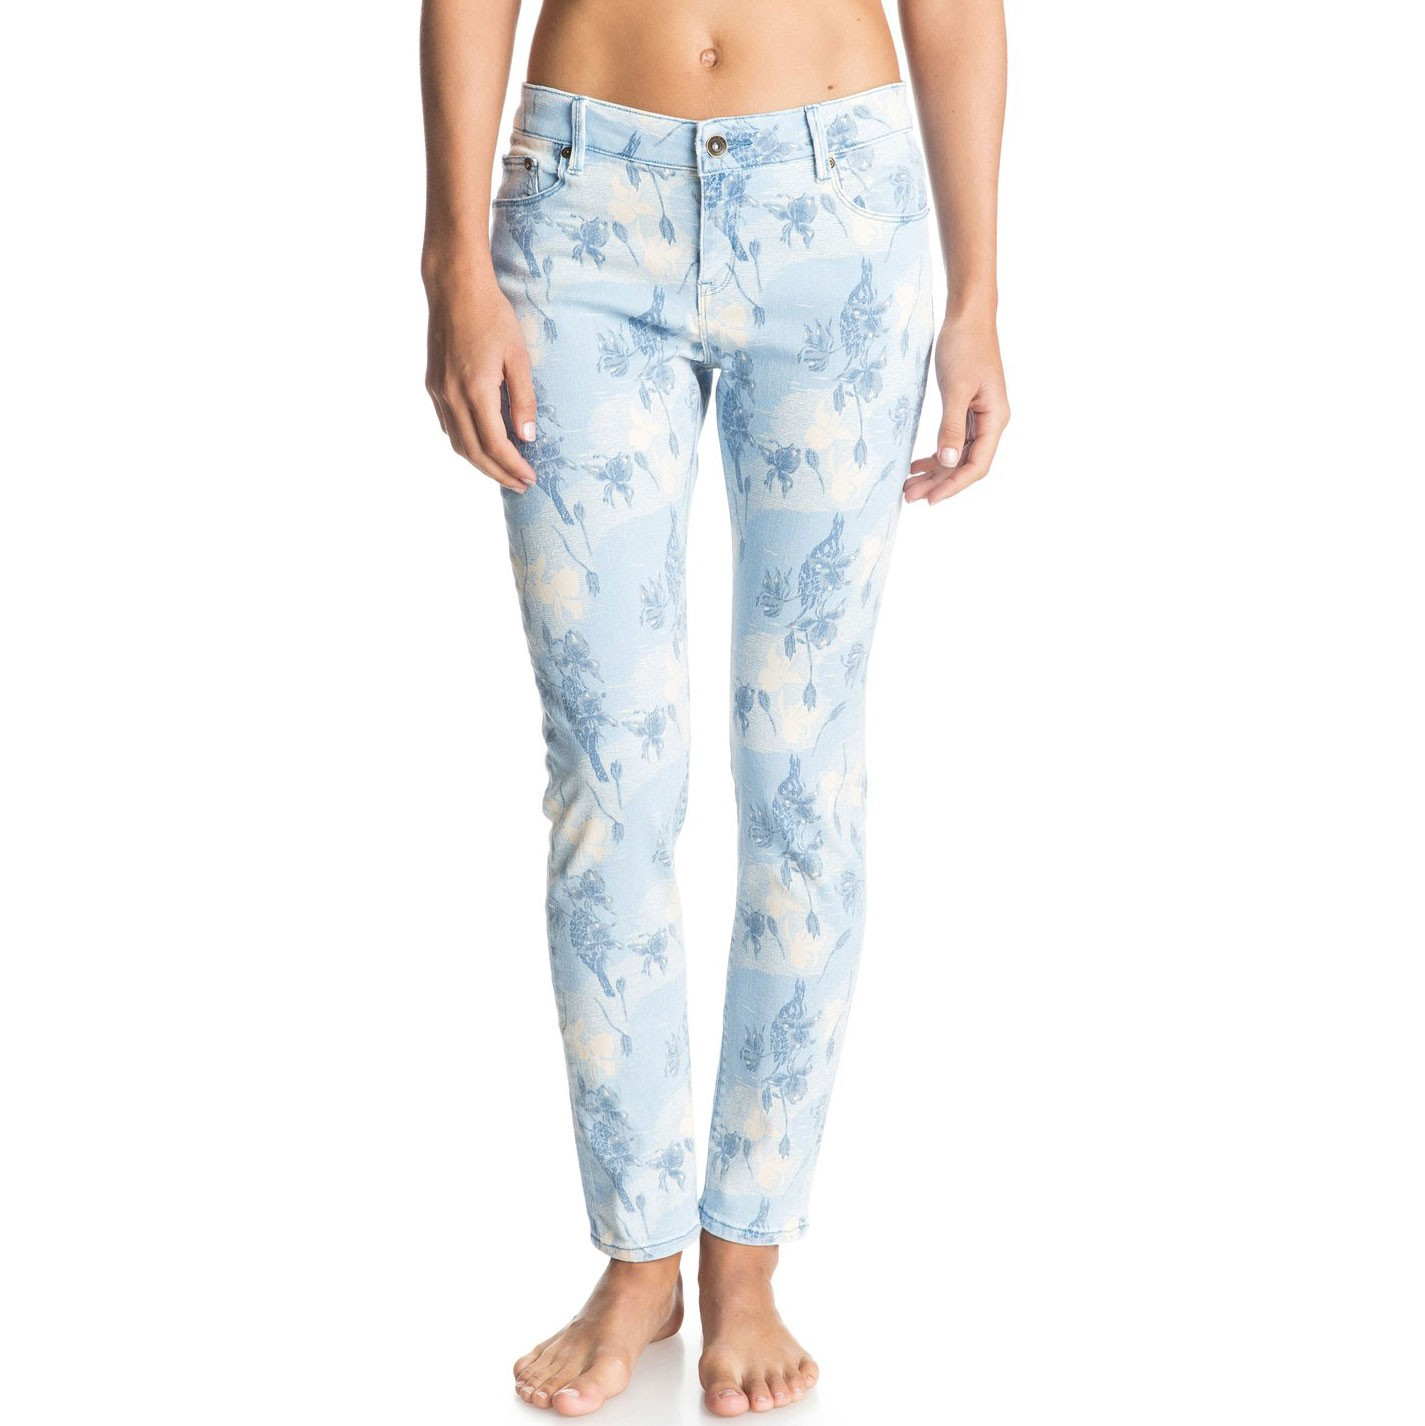 Jeansy Roxy Suntrippers Cropped small vintage heritage combo